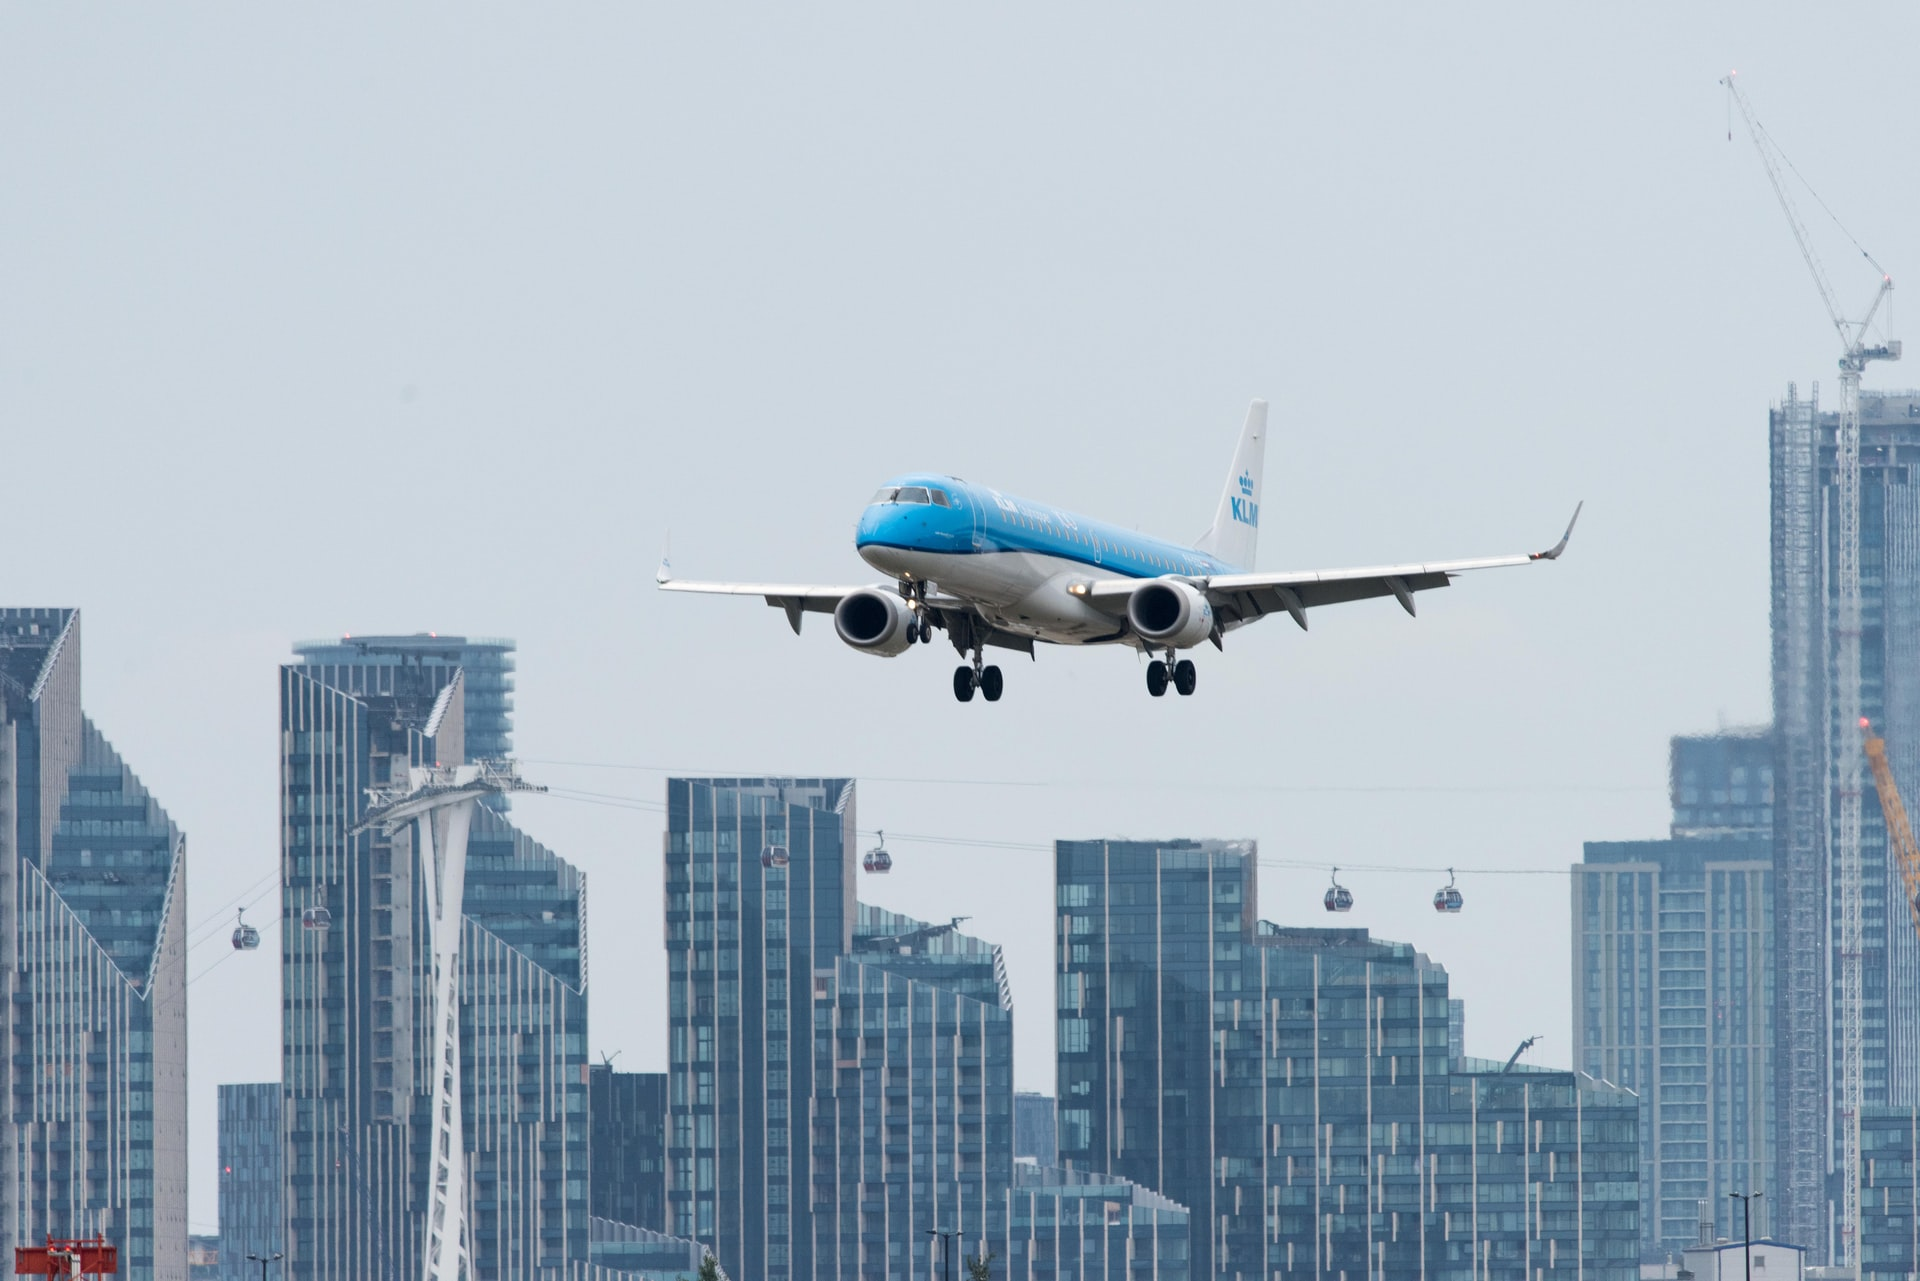 KLM plane in the air